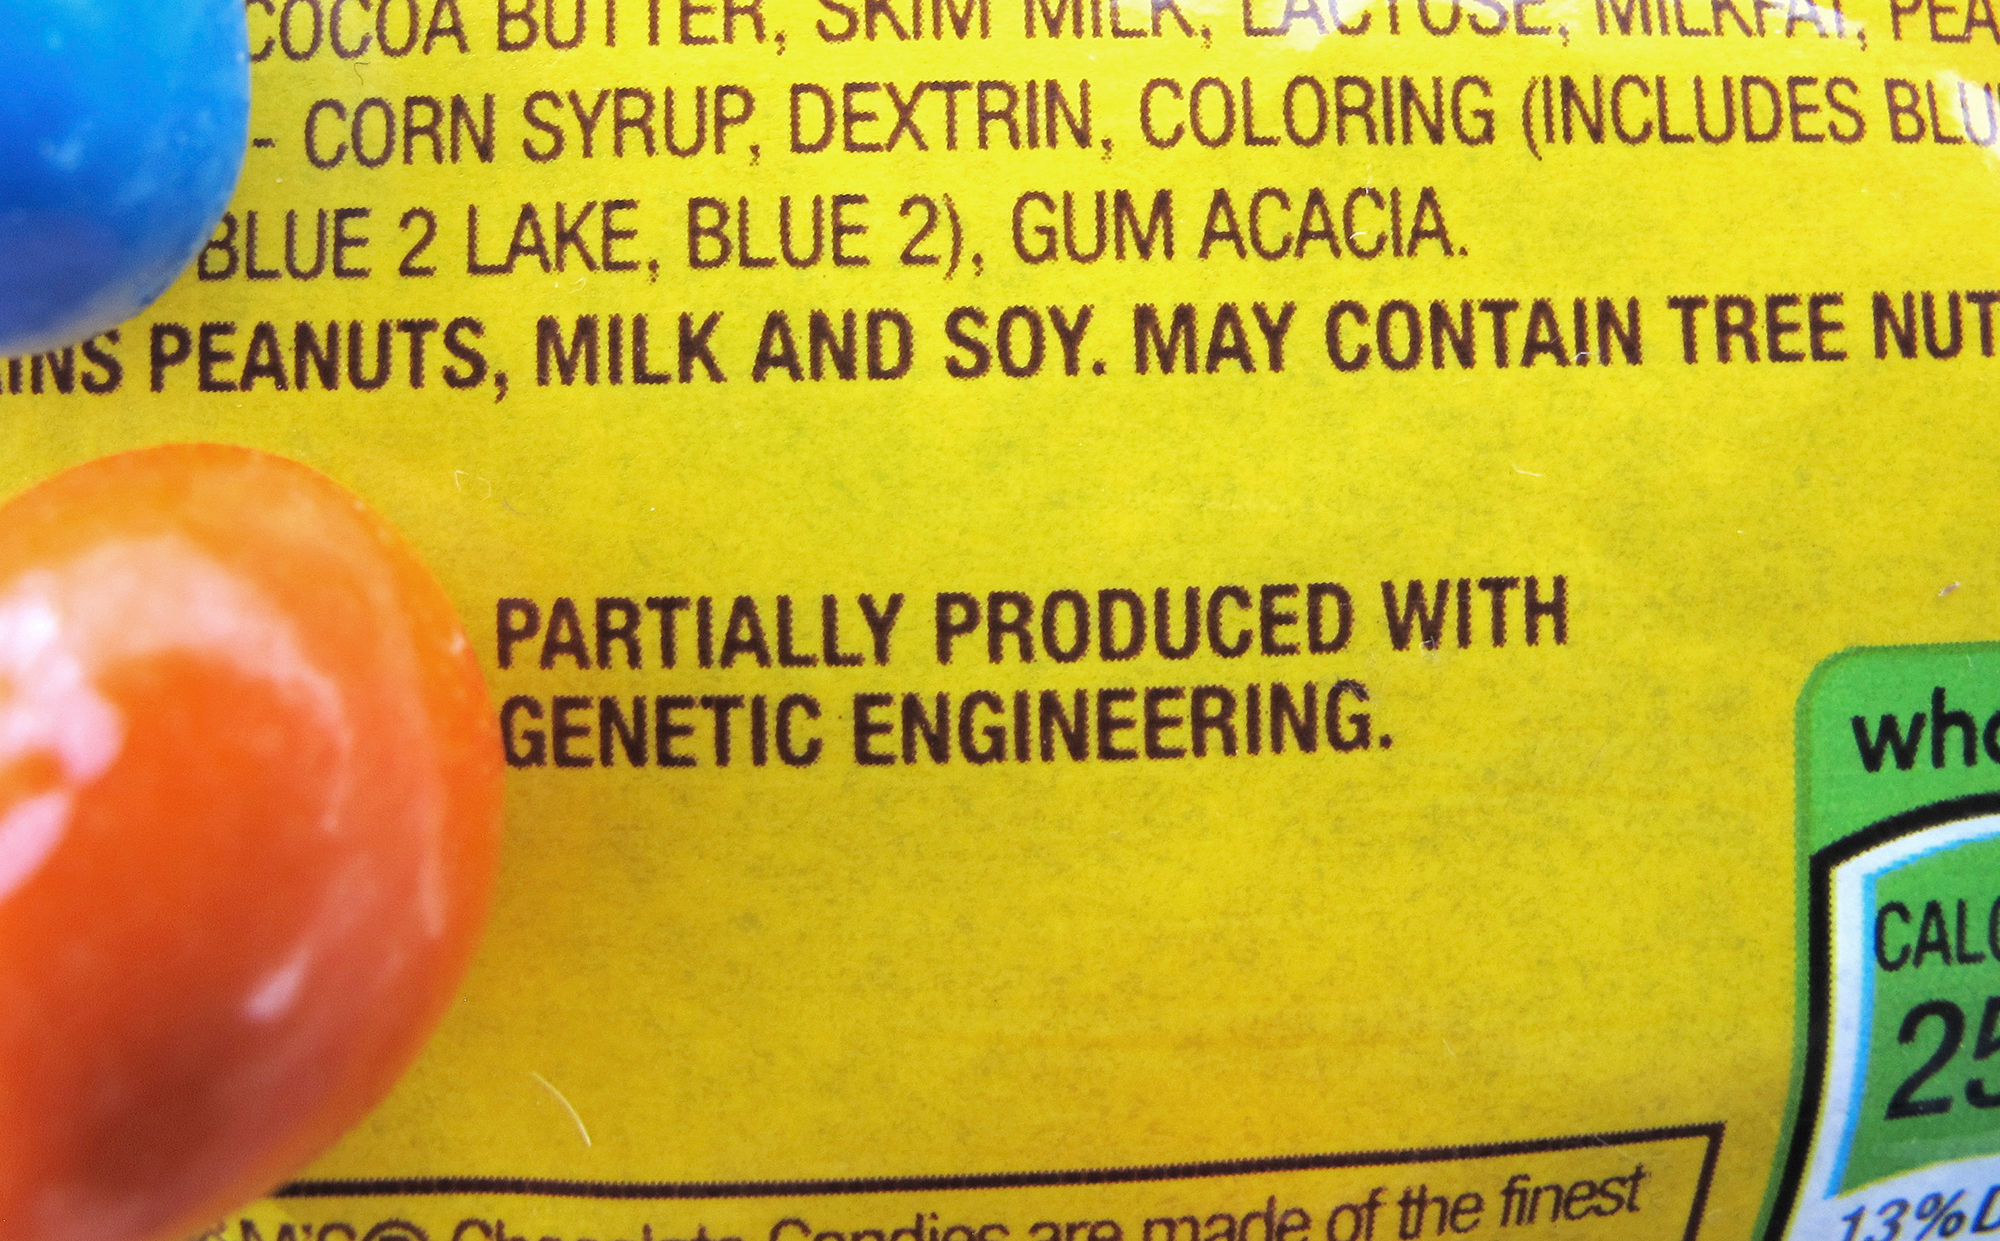 """A new disclosure statement on a package of peanut M&Ms candy notes they are """"partially produced with genetic engineering."""" (Photo by Lisa Rathke/AP)"""